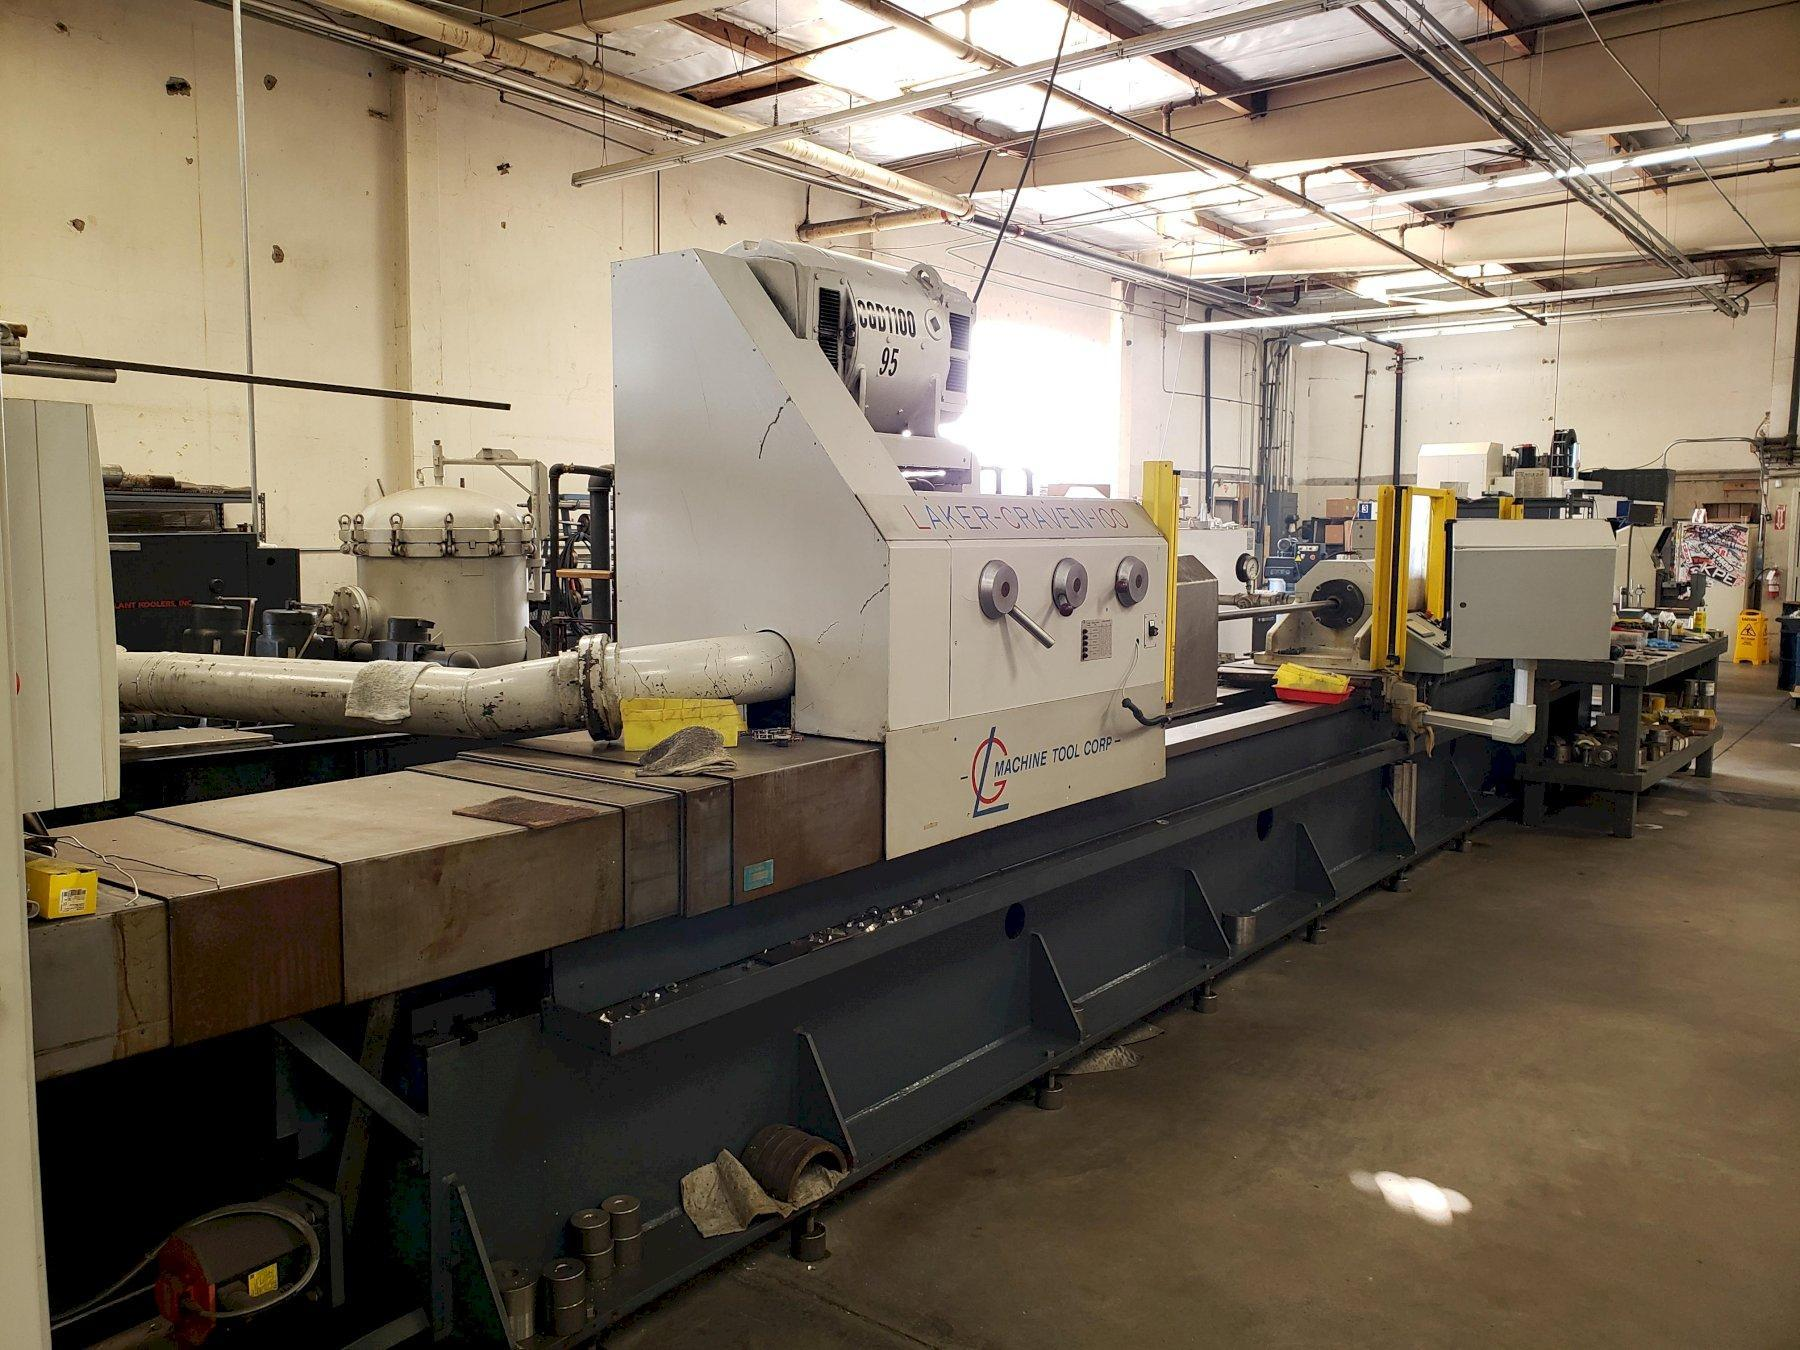 Laker-Craven 100 Deep Hole Drilling Machine with: Fanuc Panel Mate Control, Chiller, Magnetic Filter, Safety Fence, BTA Tooling, Boring Bars, and Chip Conveyor.